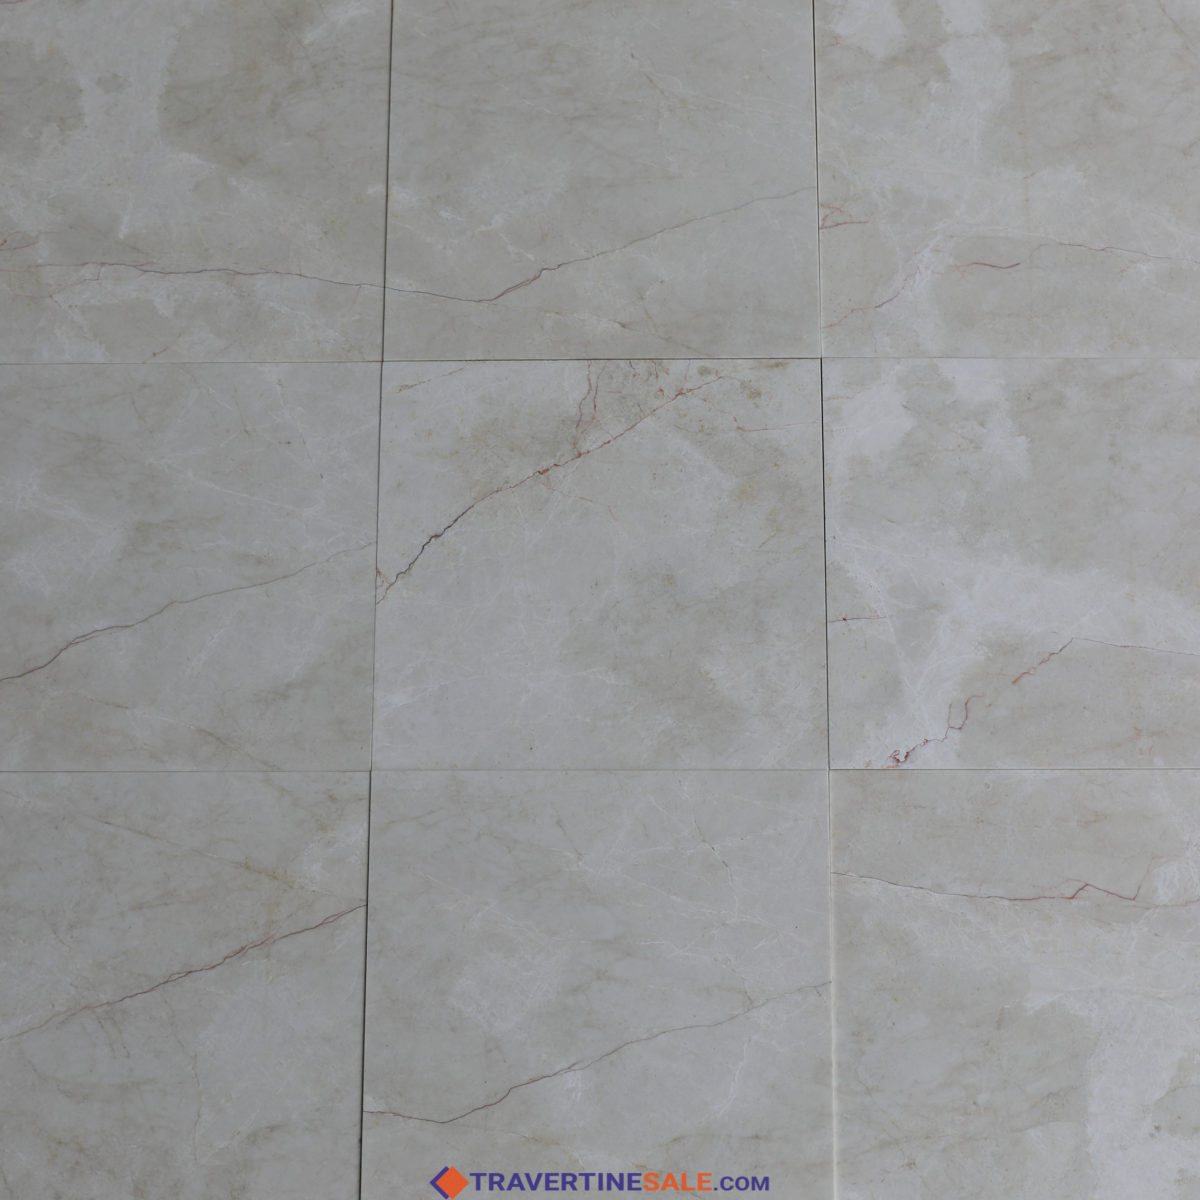 polished vanilla marble tiles with beige color and red veins